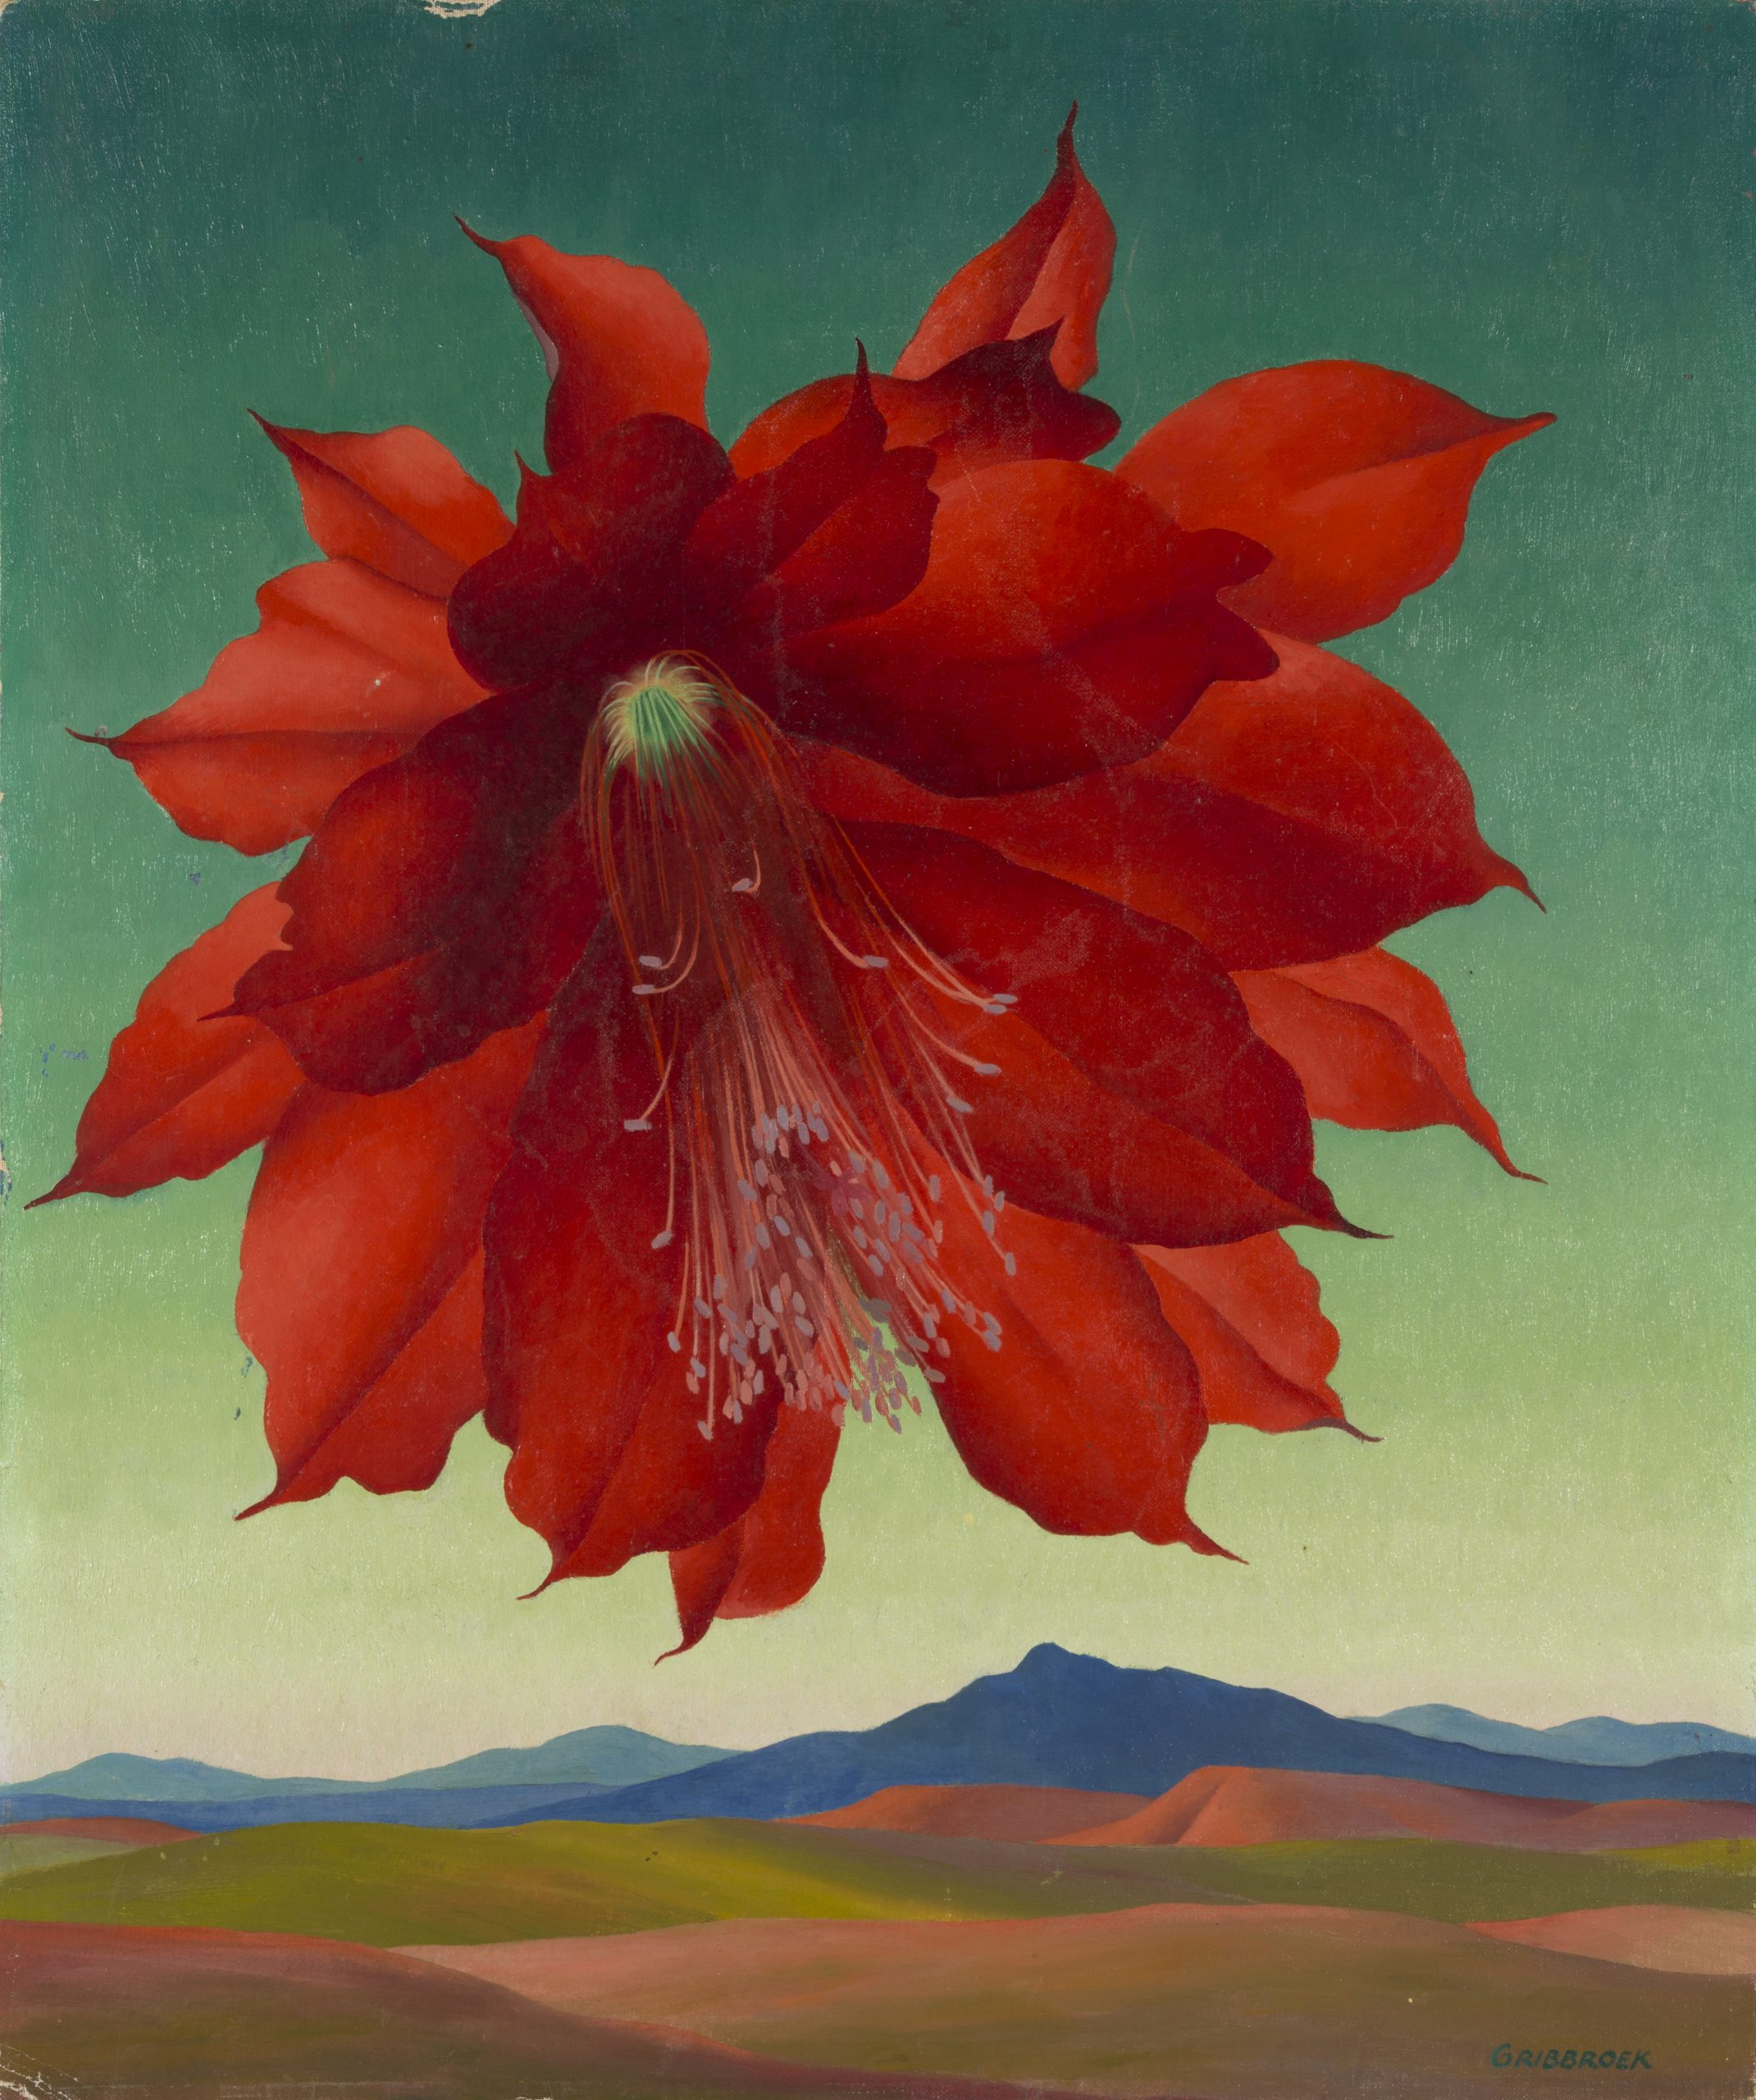 Robert Gribbroek, Epiphyllum, 1953, Oil on canvas board, Purchase with funds from the Friends of Art, Raymond Jonson Collection